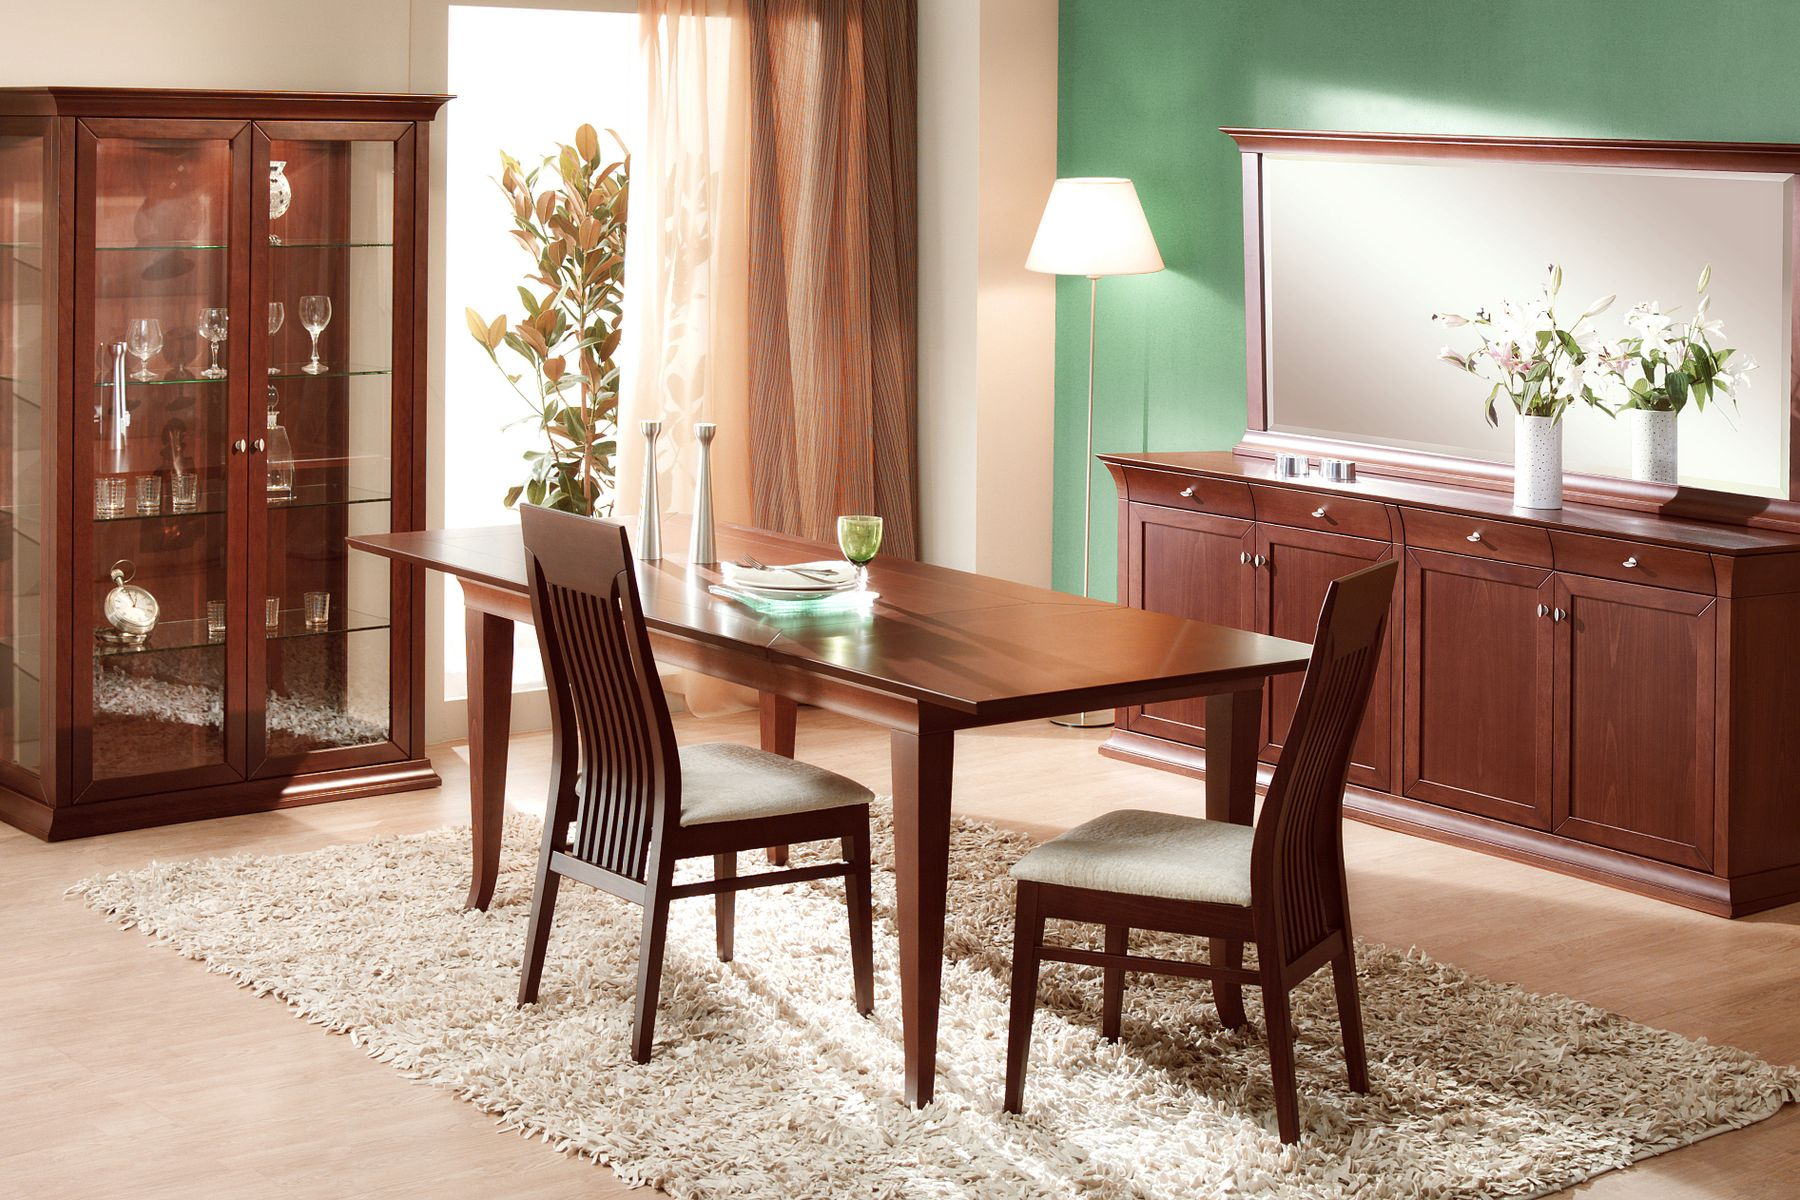 How to Clean Your Wooden Furniture shutterstock 54840832